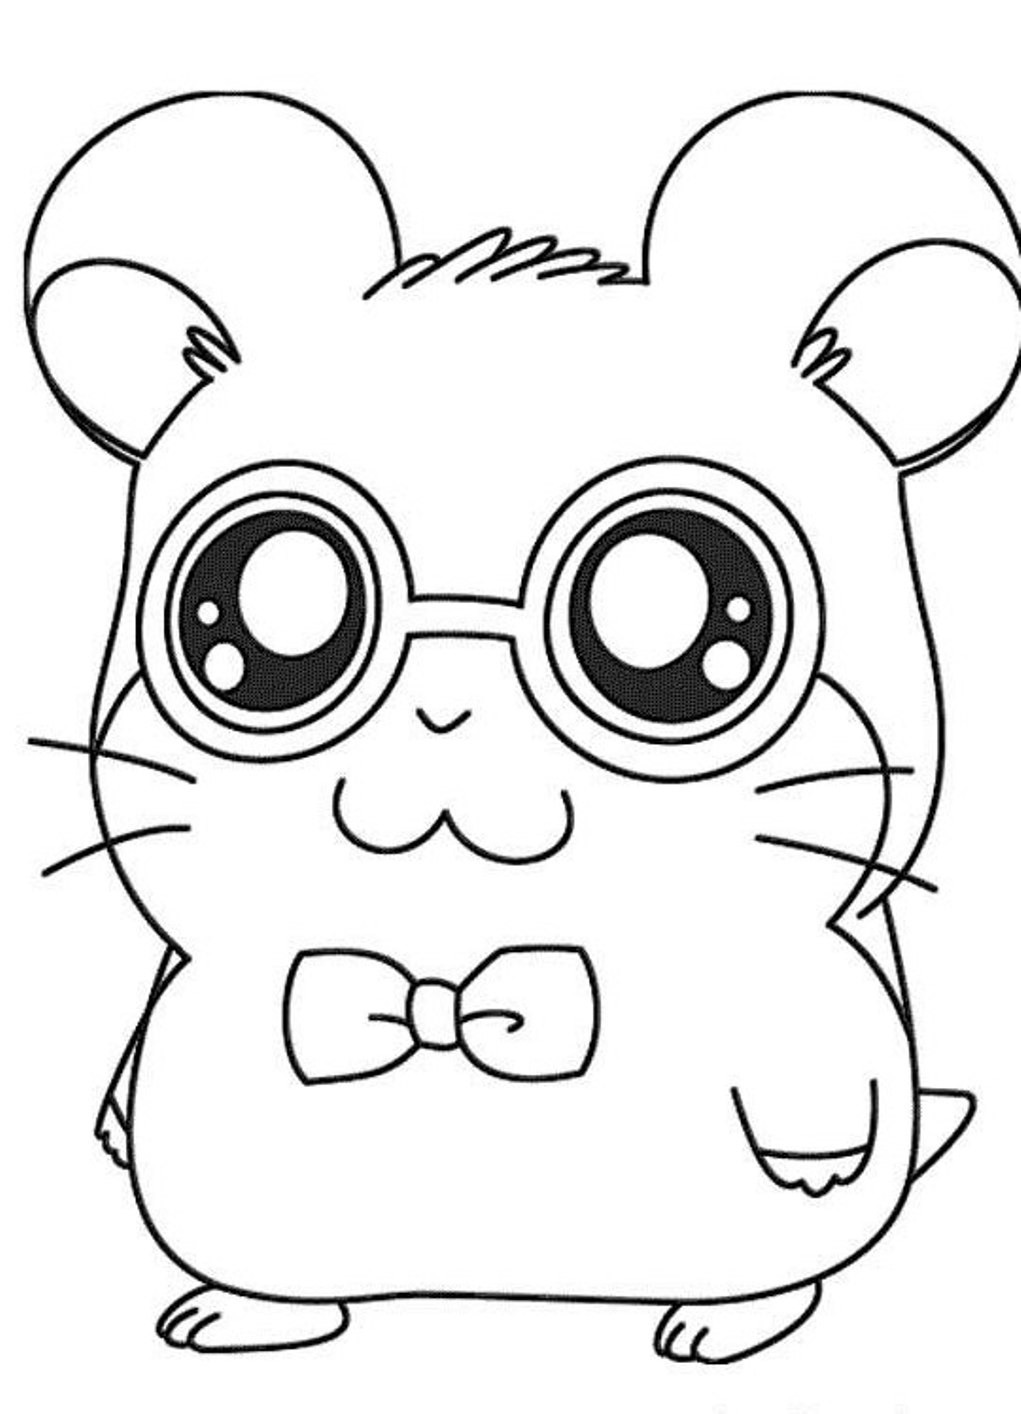 coloring sheets cute cute disney coloring pages to download and print for free cute sheets coloring